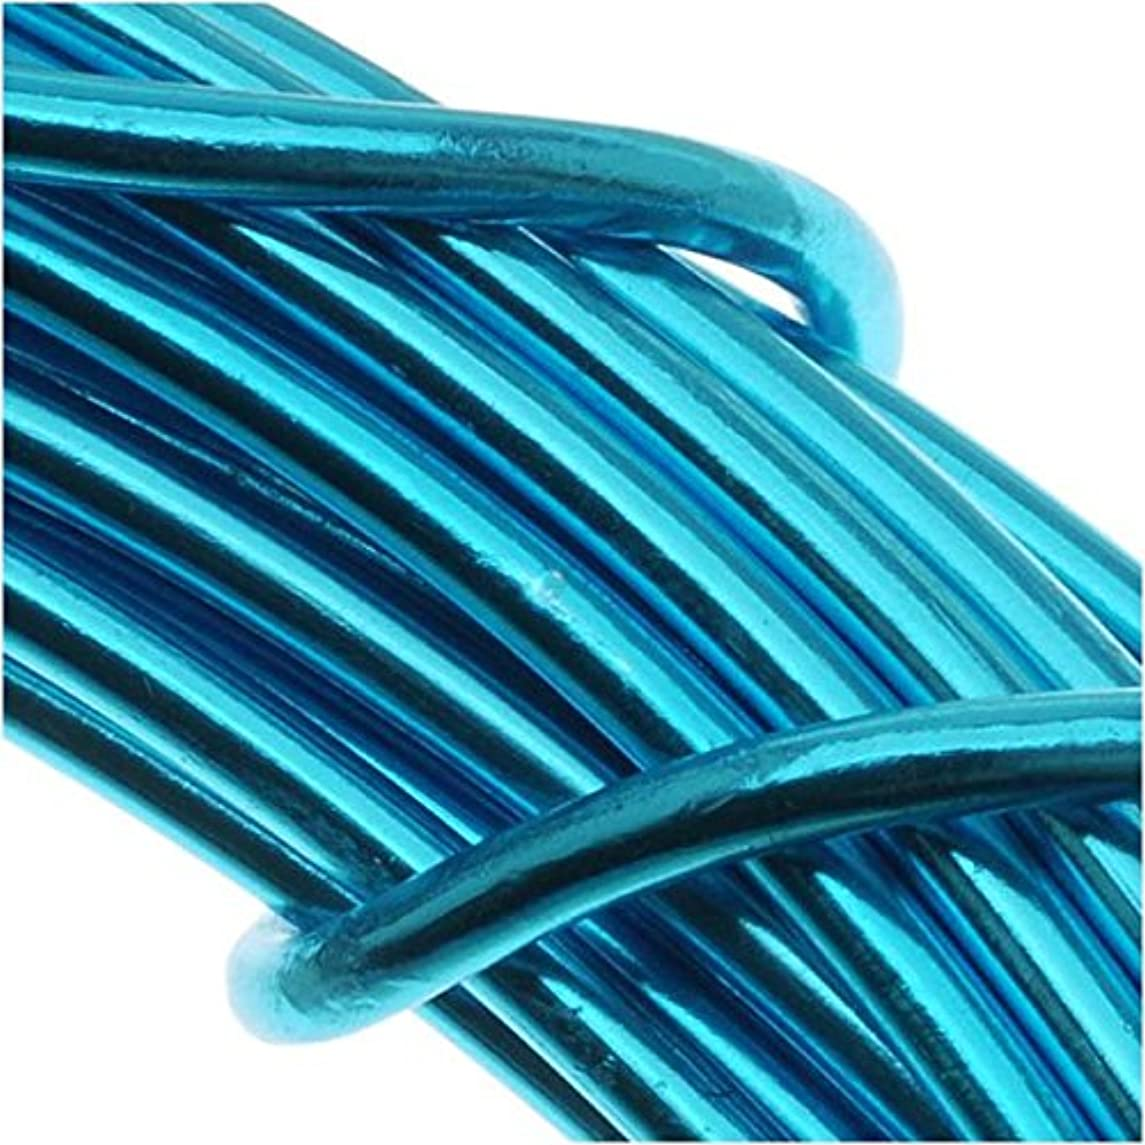 Beadsmith WCR-4117 11.8m 12 Gauge Aluminum Craft Wire, Turquoise, 39' weqbcqdzzd5